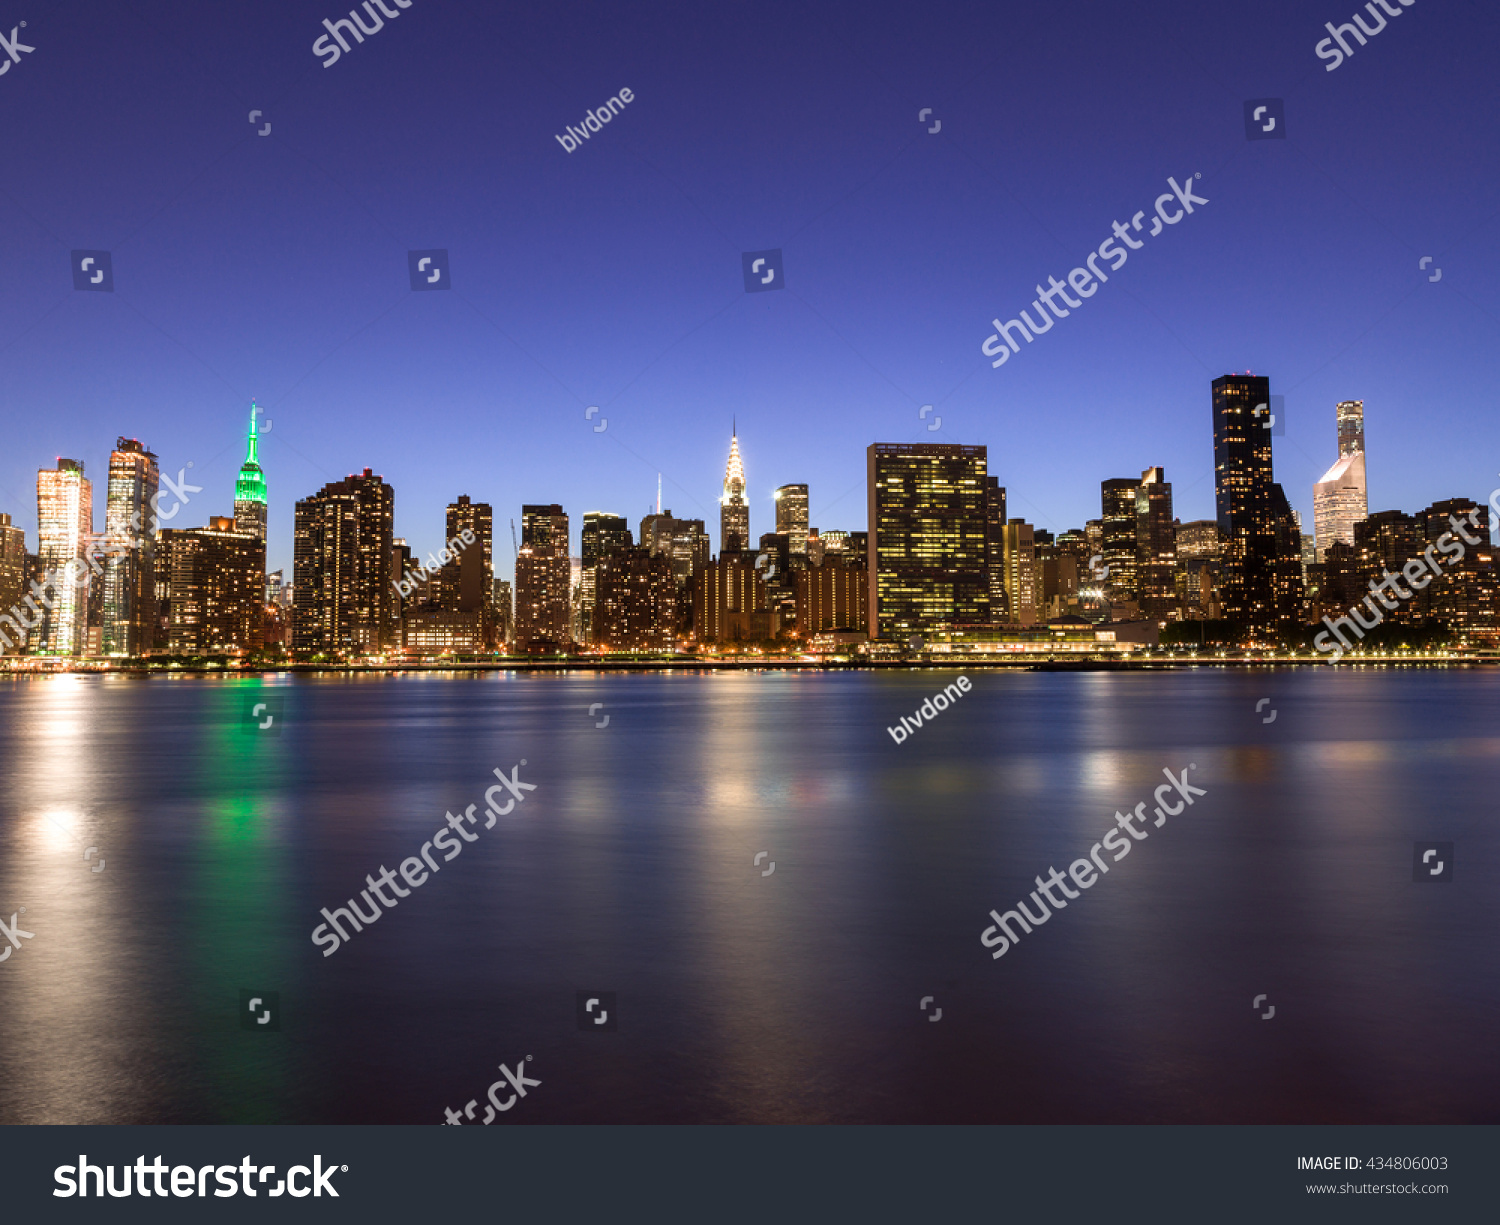 new york city manhattan buildings skyline stock photo 434806003 shutterstock. Black Bedroom Furniture Sets. Home Design Ideas